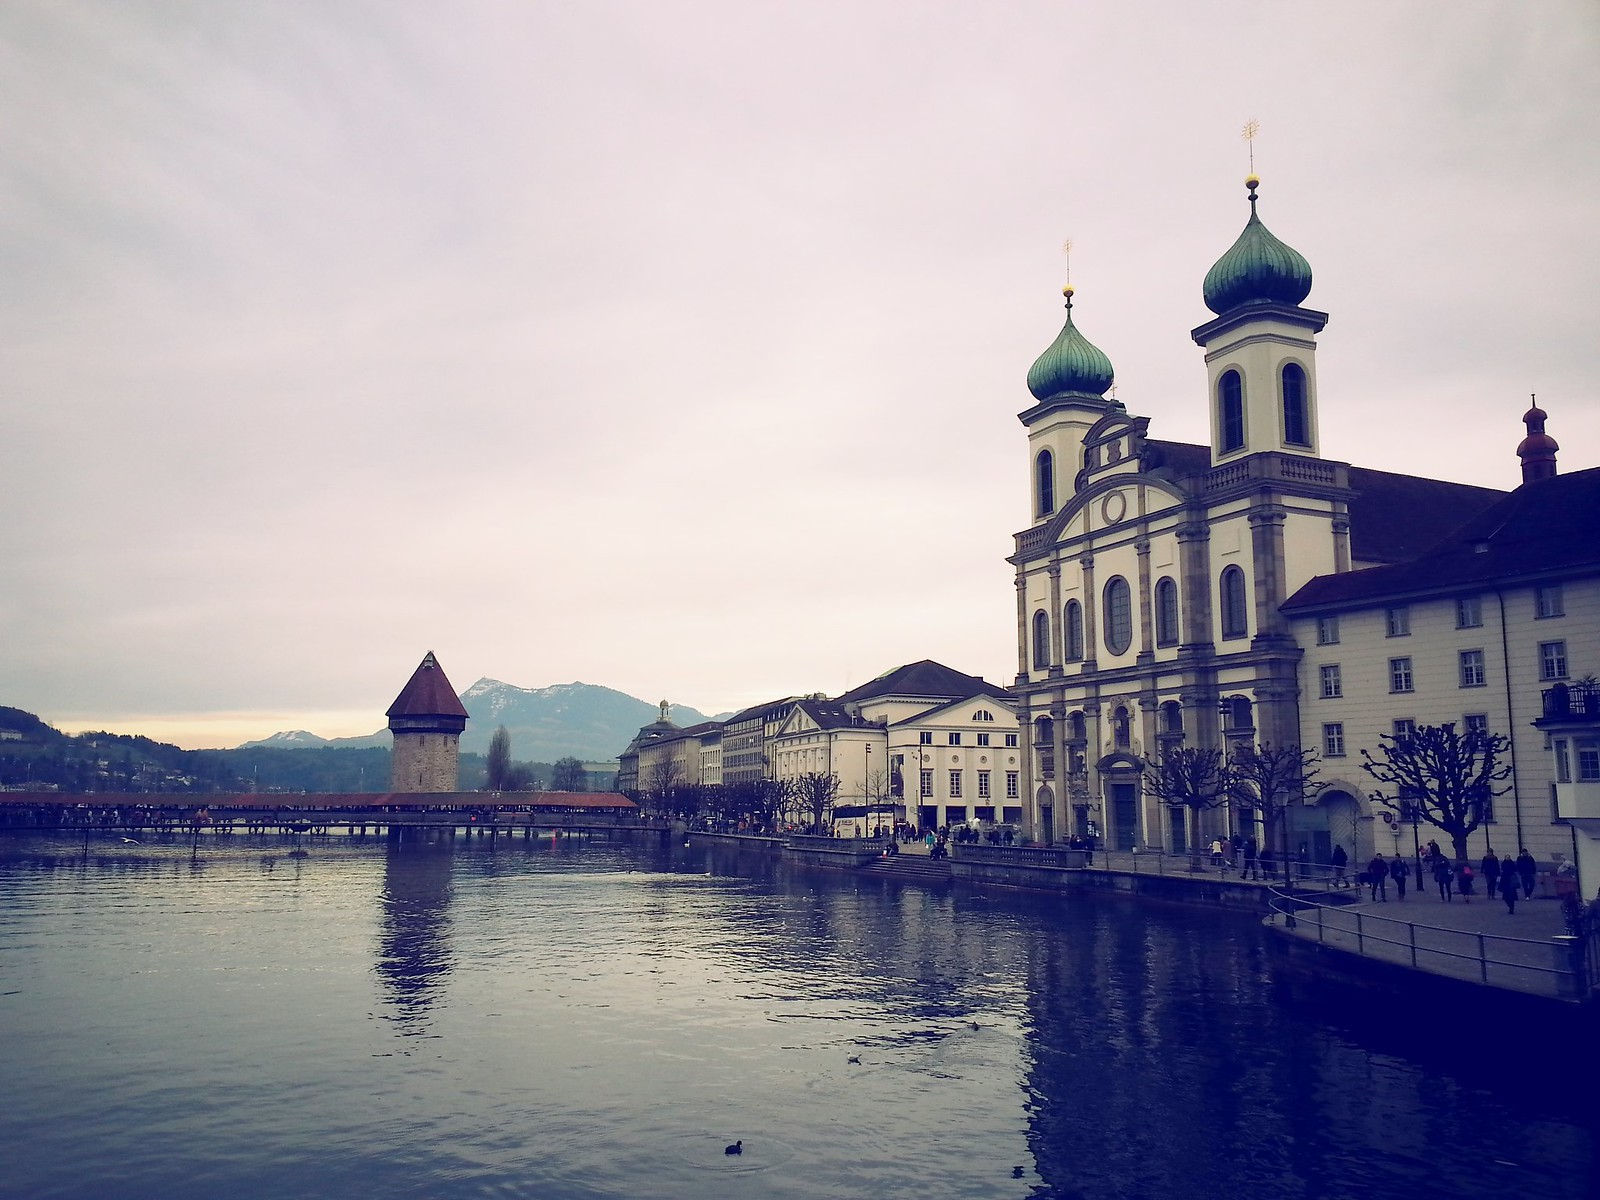 16-01-30 (Lucerne) View of Jesuit Church.